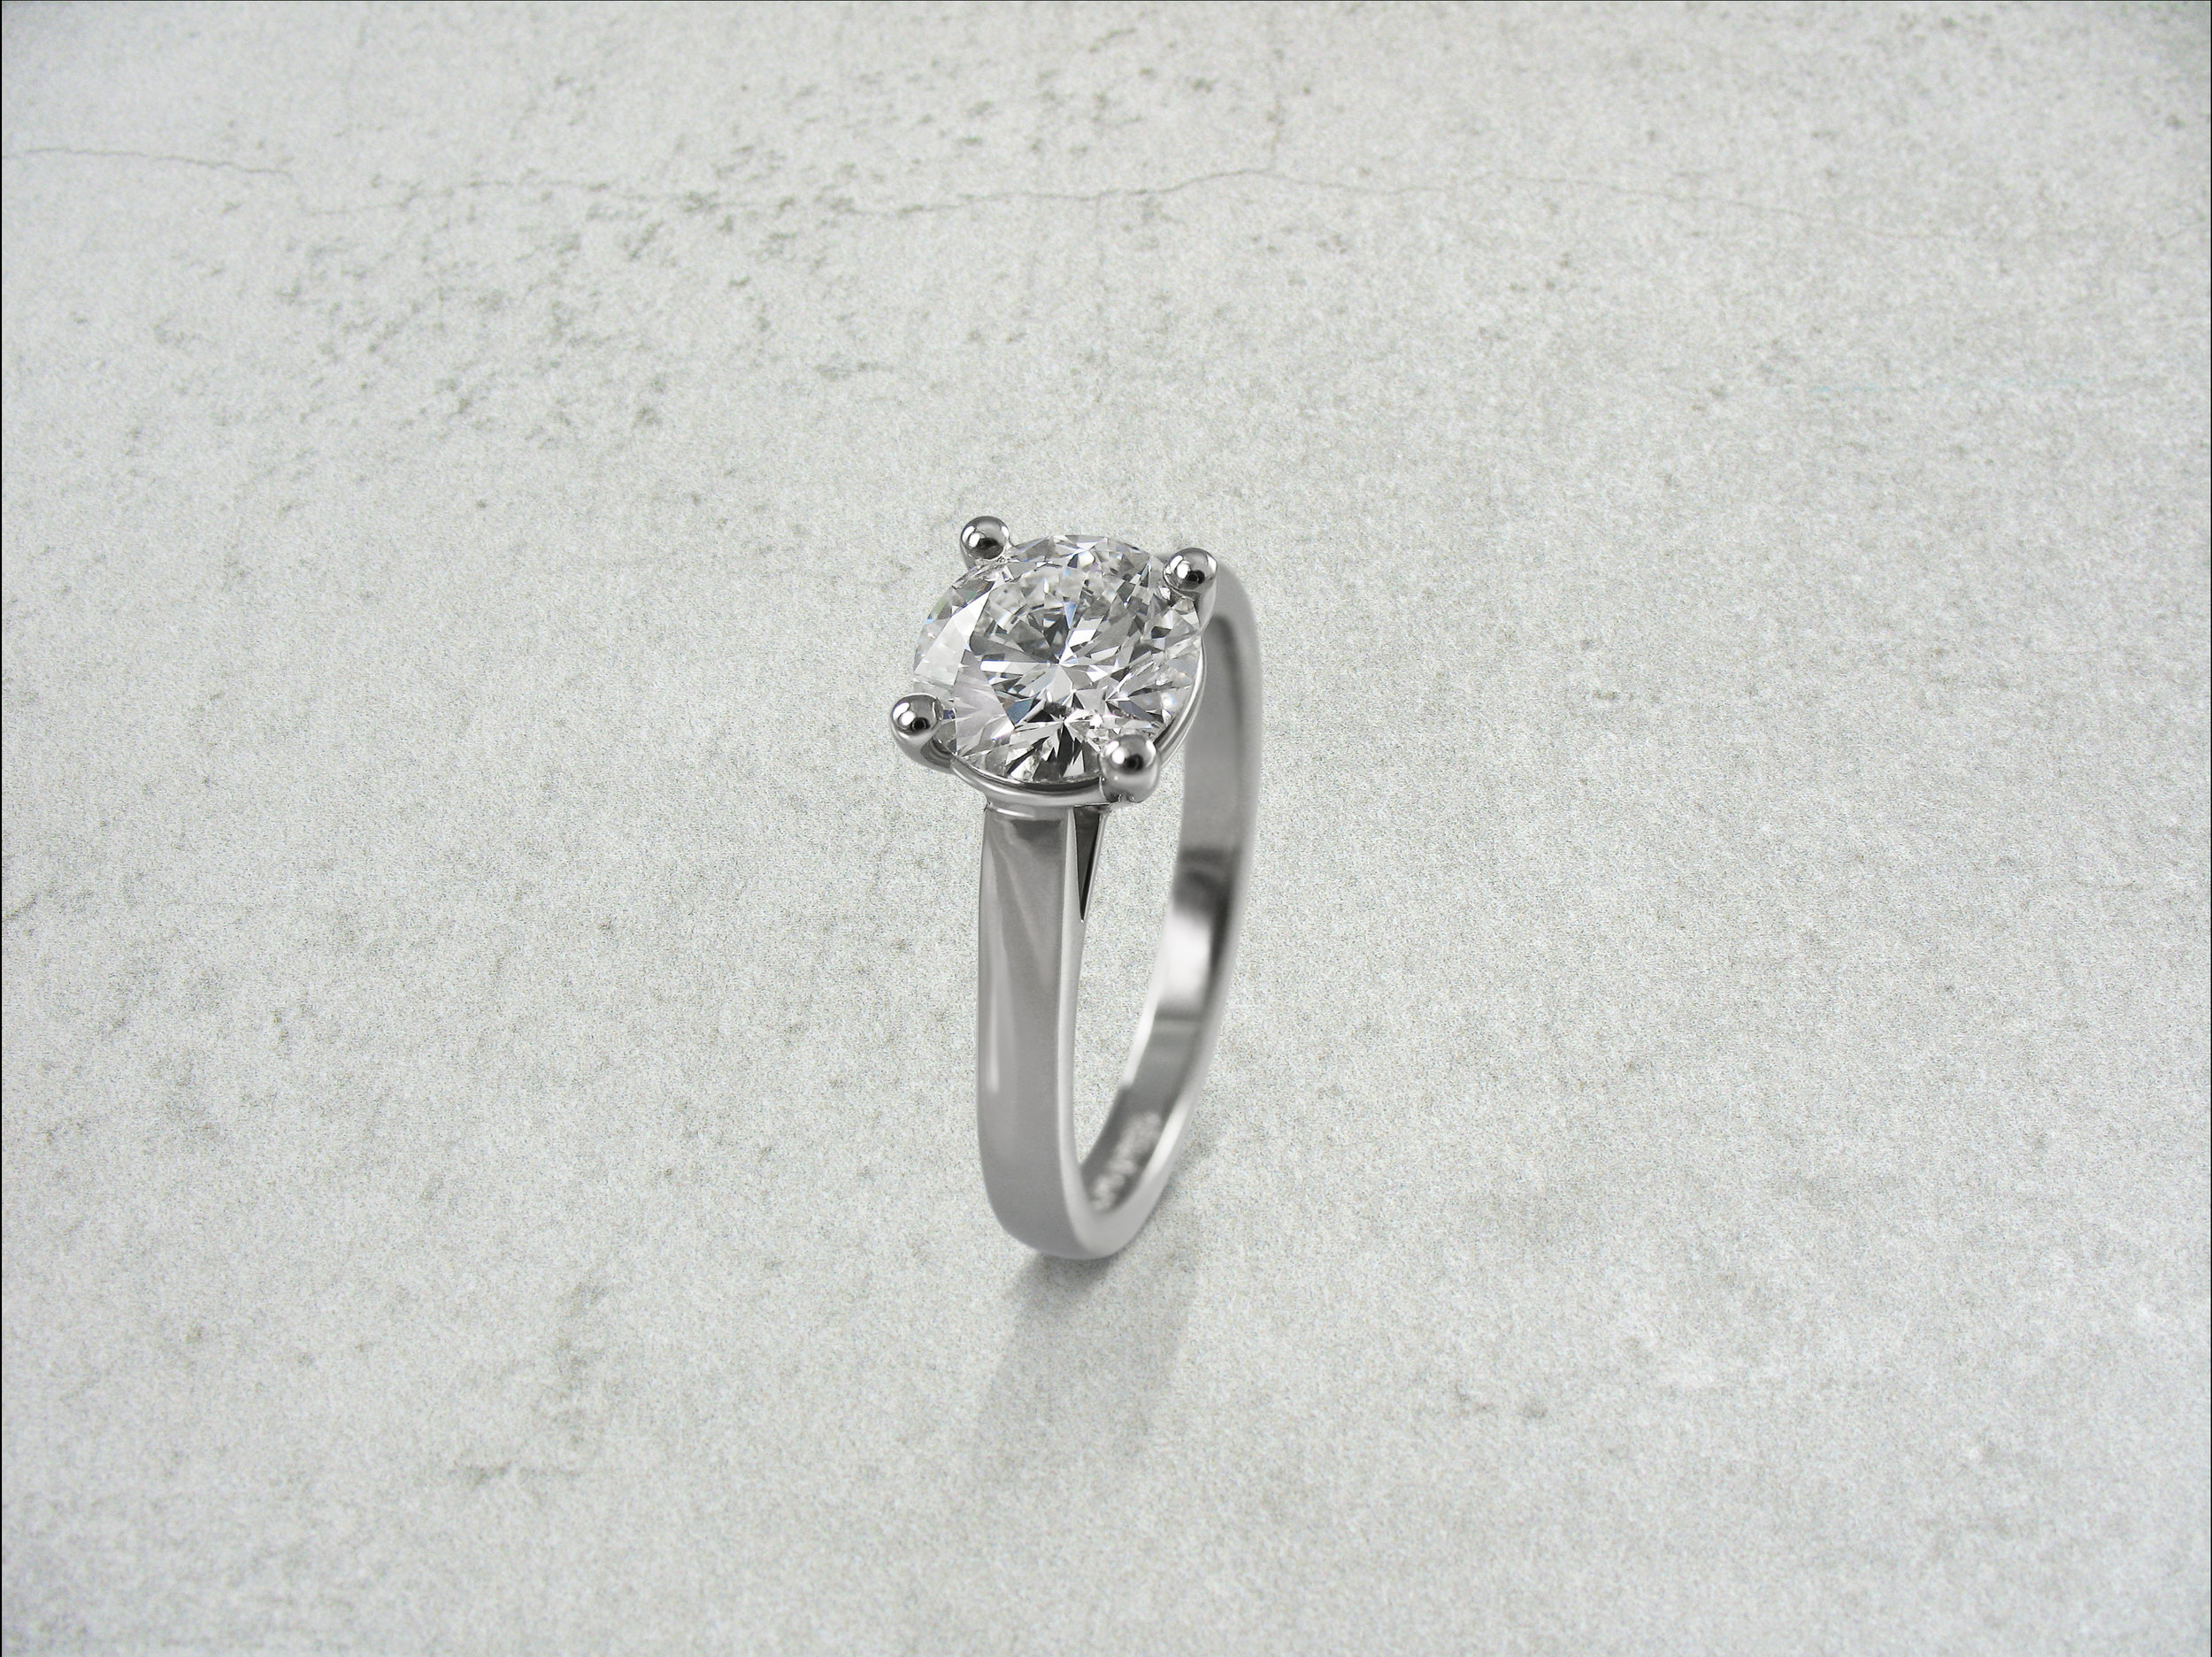 Round brilliant cut diamond four claw solitaire engagement ring